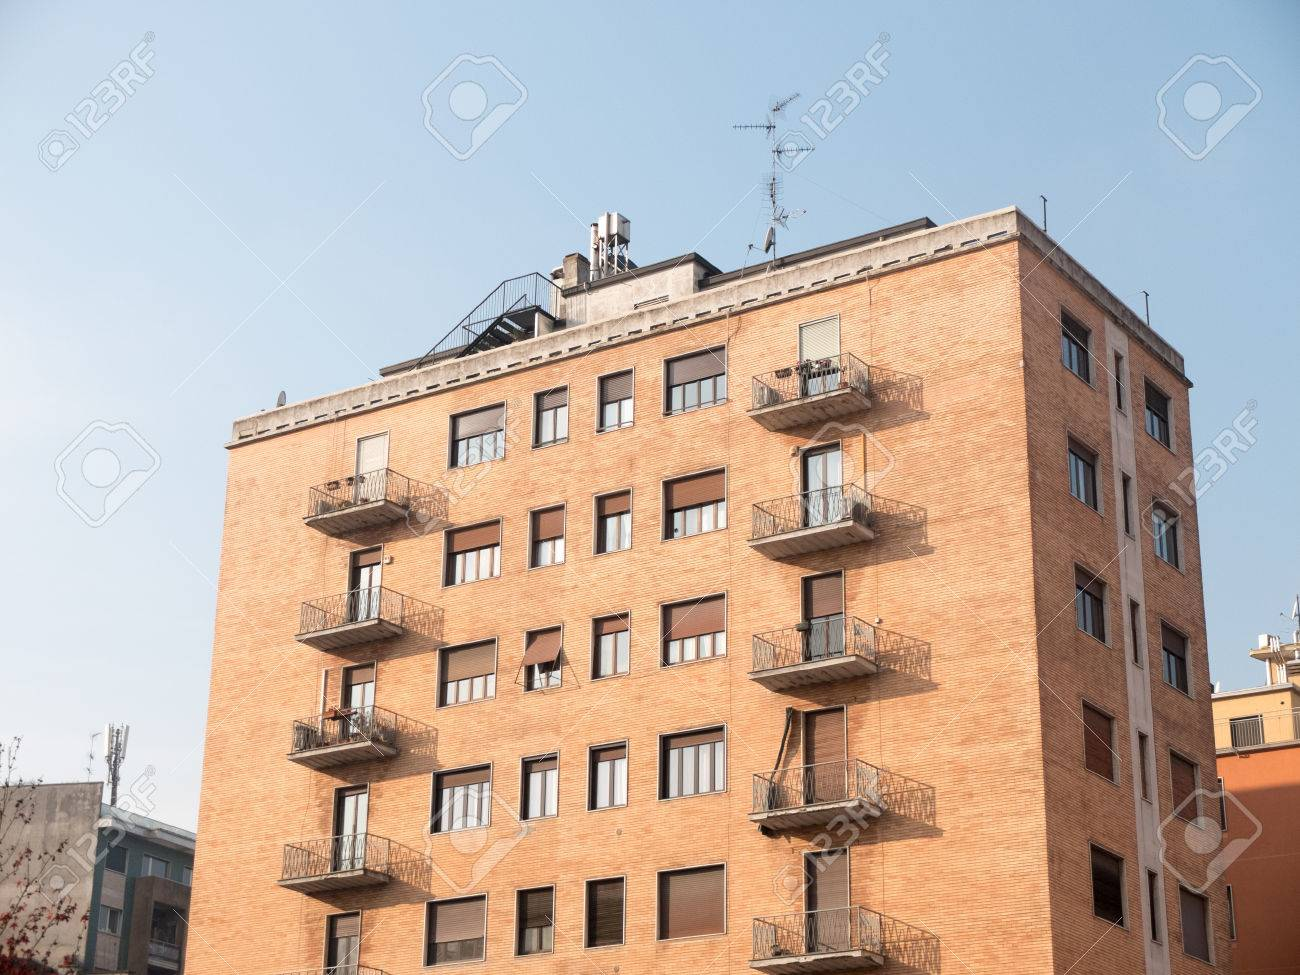 Low Rise Residential Apartment Building With Small Balconies And Brick  Facade Illuminated By Bright Sunlight On